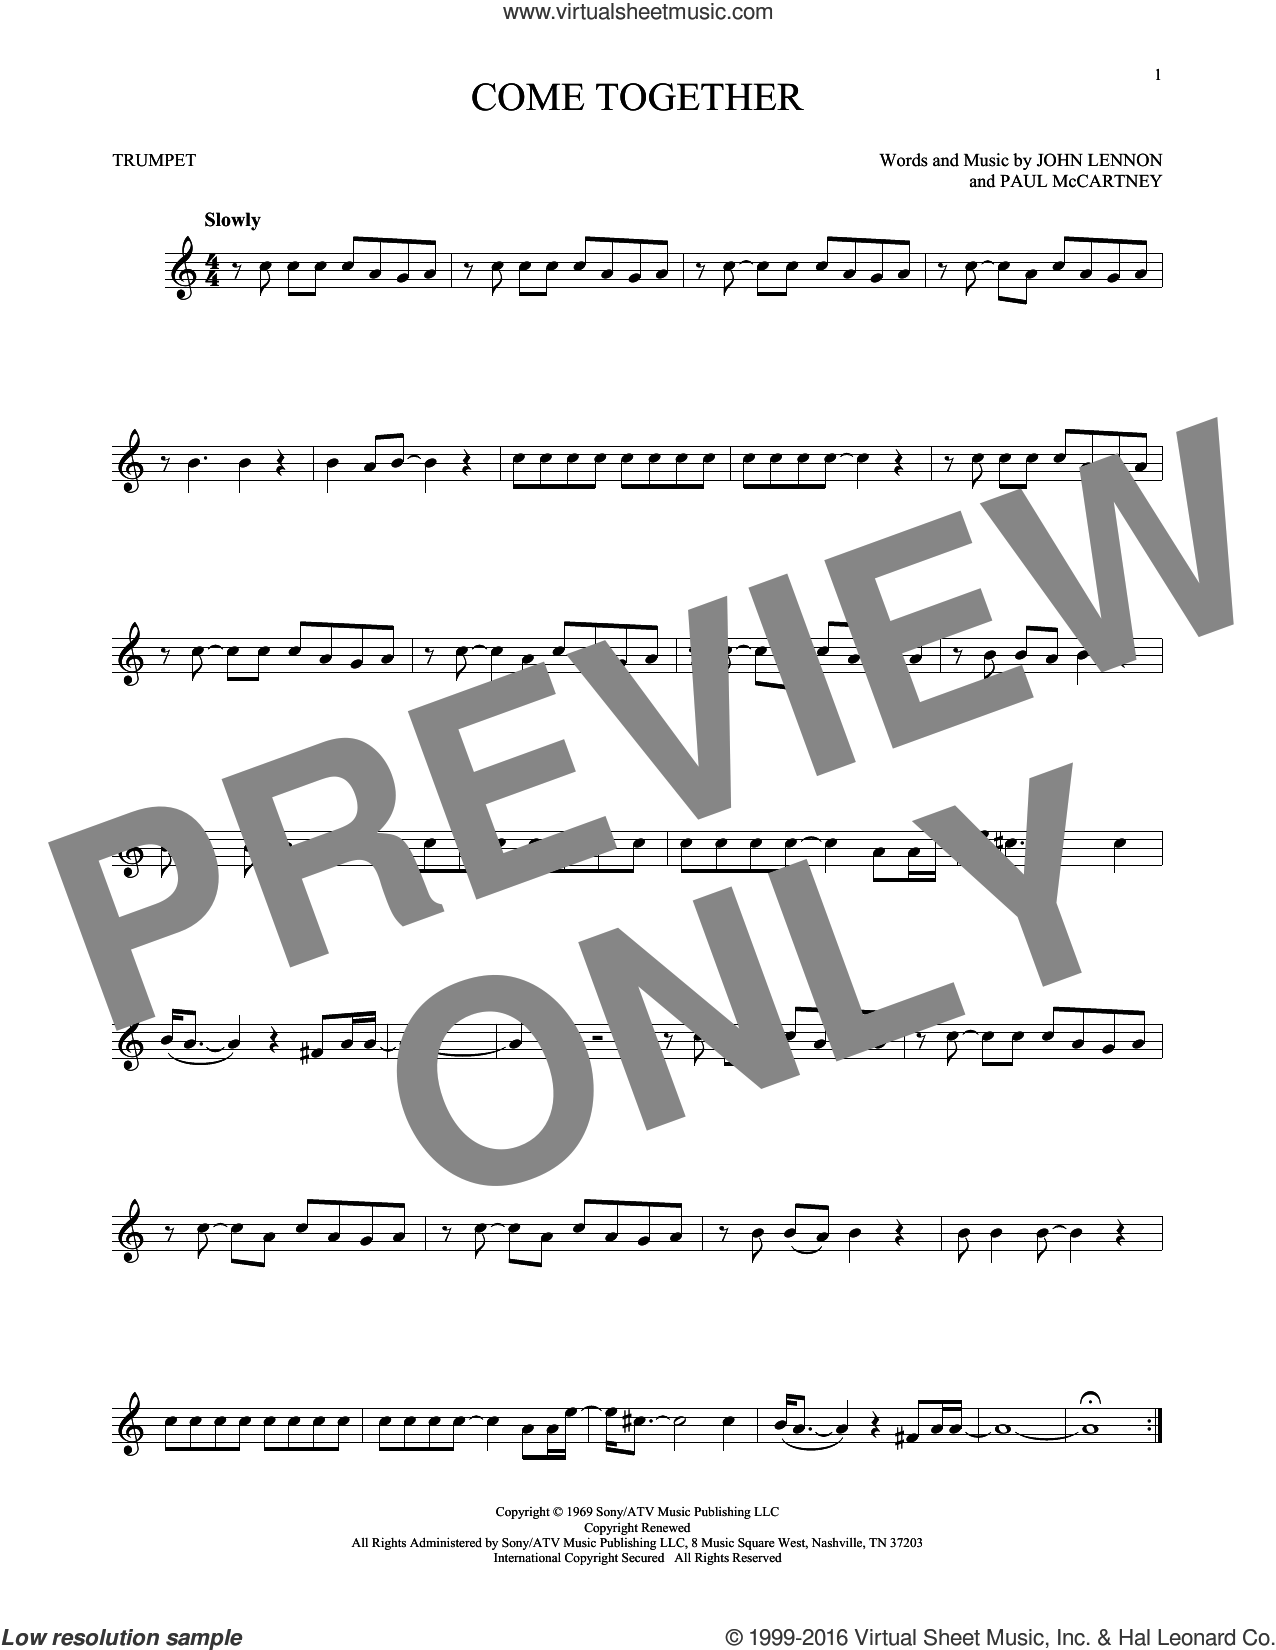 Come Together sheet music for trumpet solo by The Beatles, John Lennon and Paul McCartney, intermediate skill level